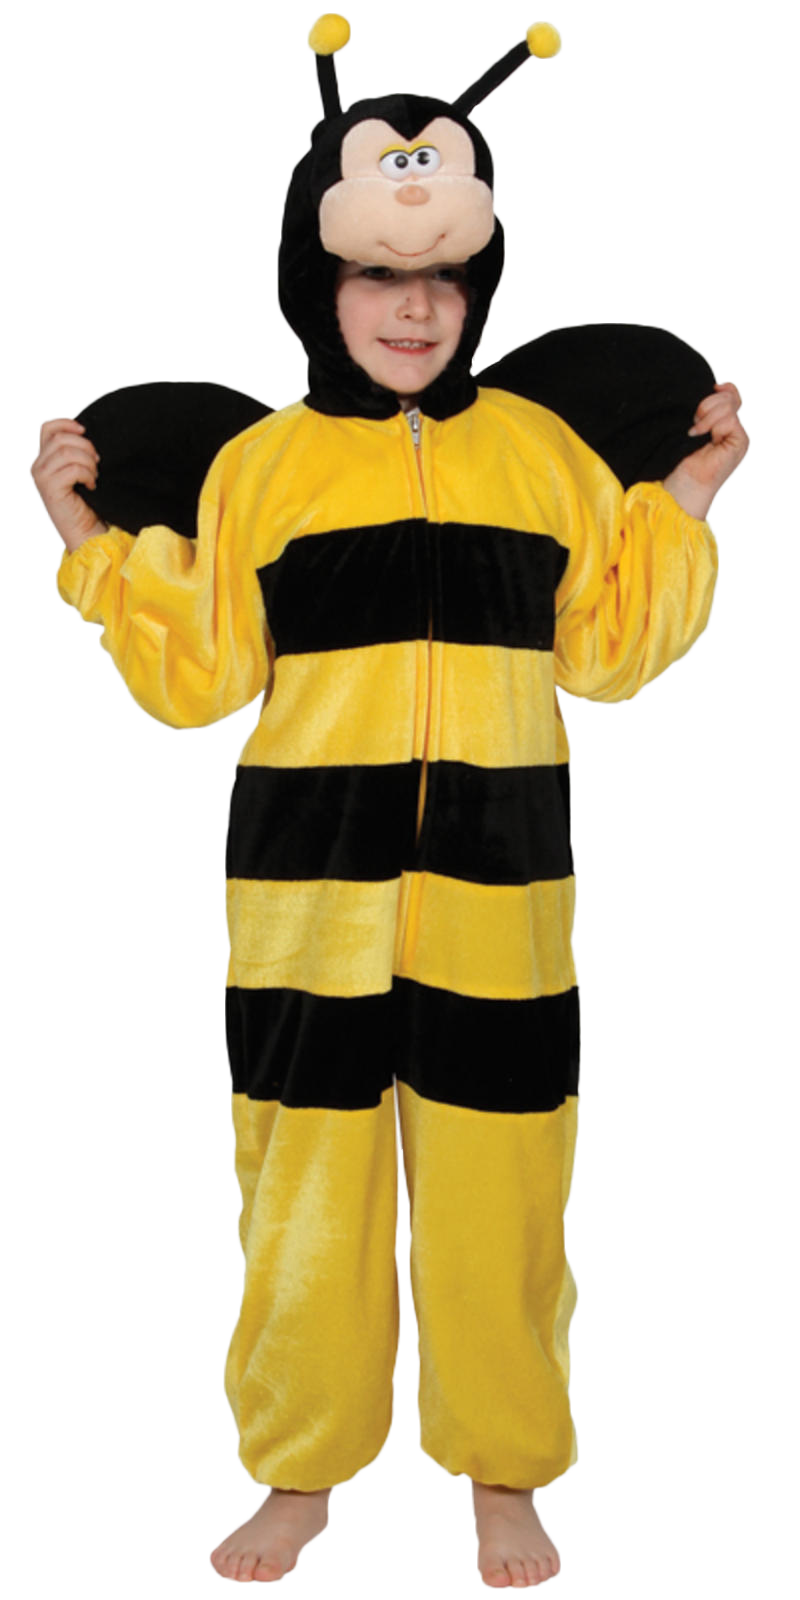 Kids Cute Bumble Bee Halloween Costume 12 Asphalt This hilarious bumble bee or honey bee t-shirt is just about as cute and funny as things are going to get this halloween. This would make a great shirt for an easy and funny halloween costume to go trick or treating in.